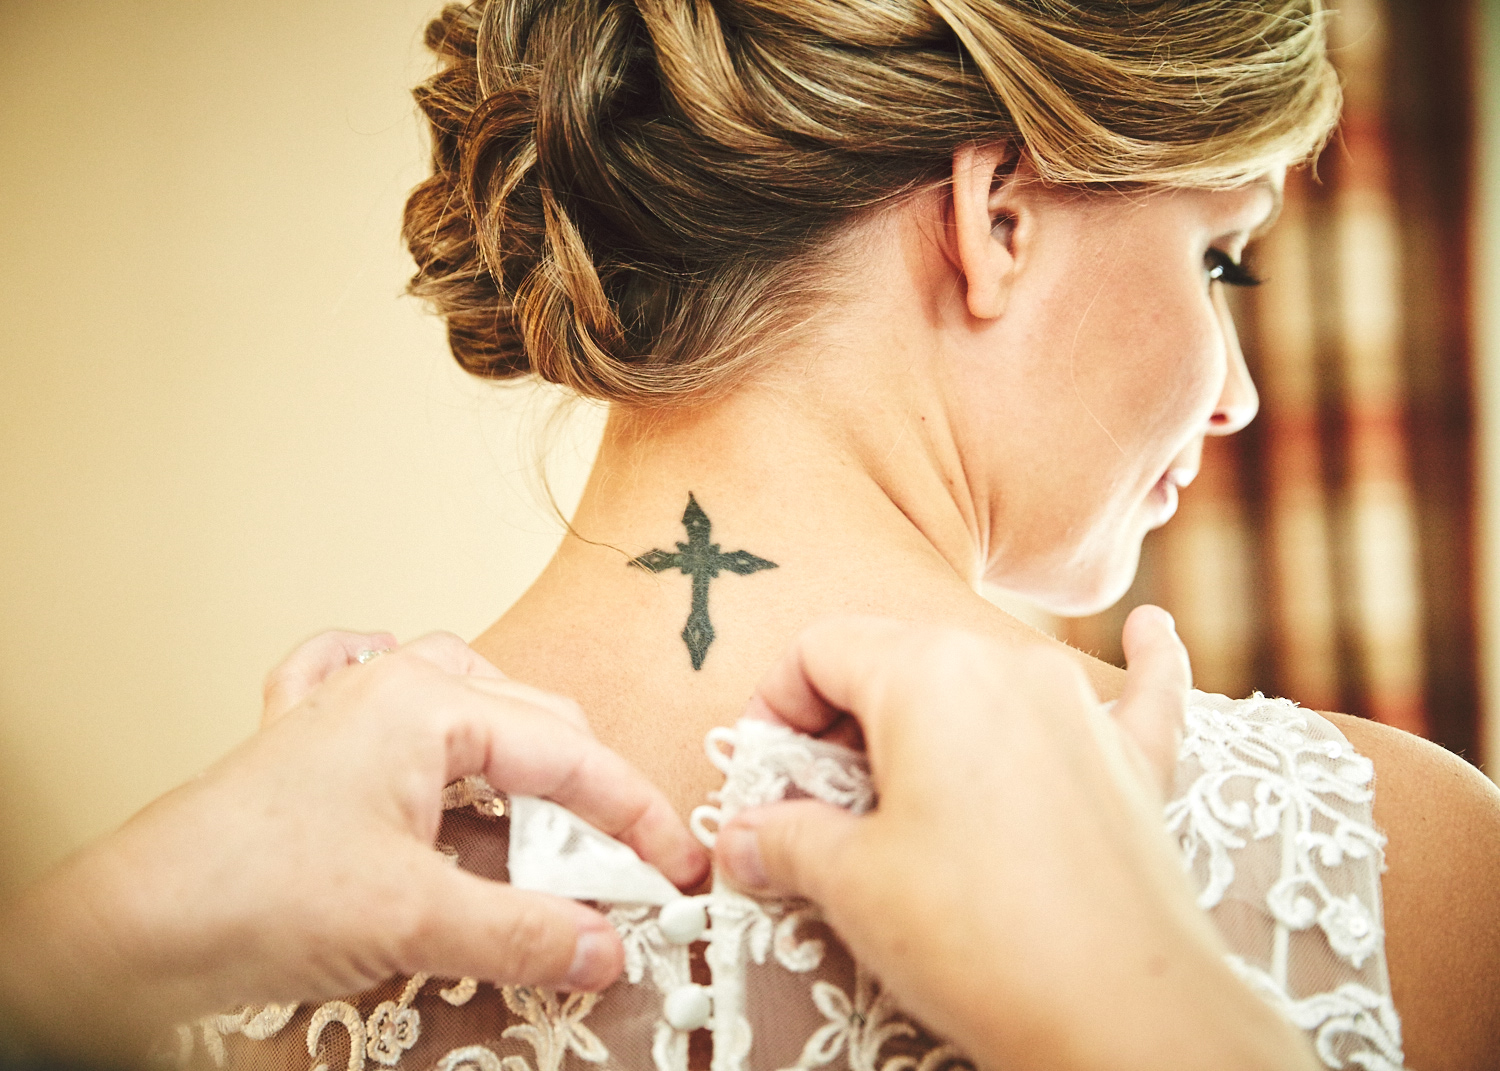 161013__T&J__PeronaFarmsWedding_By_BriJohnsonWeddings_0018.jpg